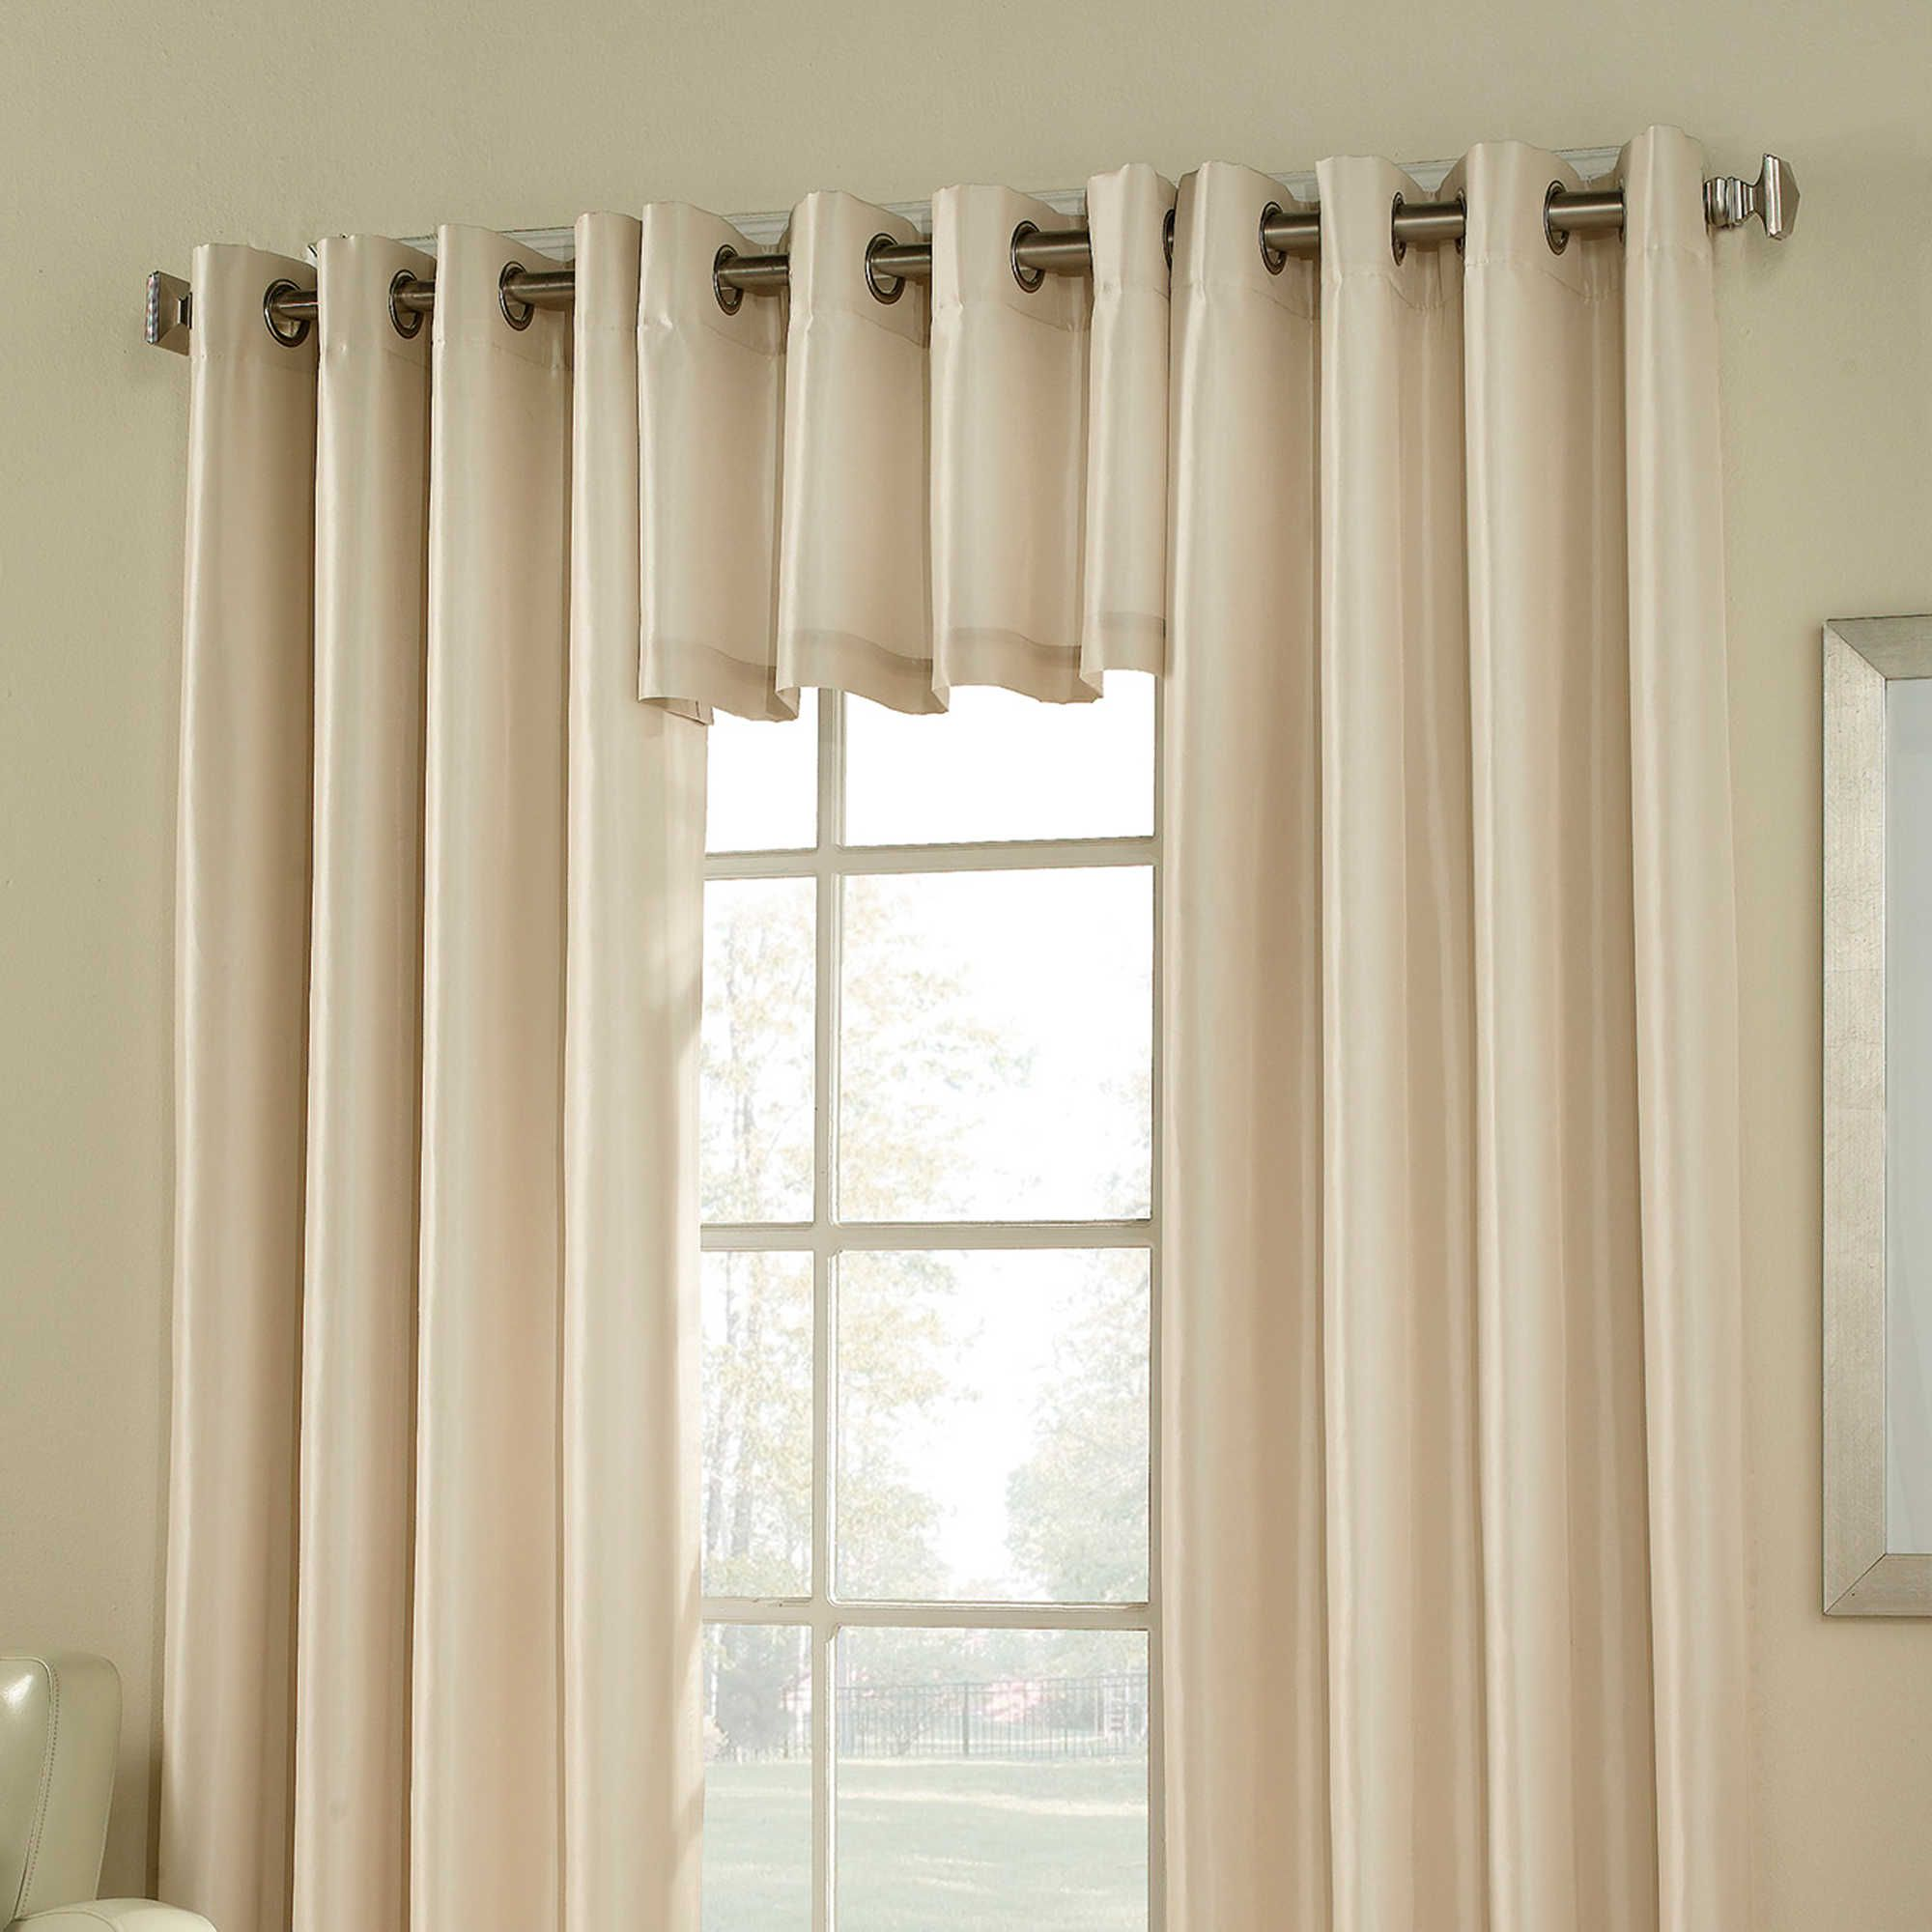 Window coverings types  argentina room darkening grommet window valance  шторы  pinterest